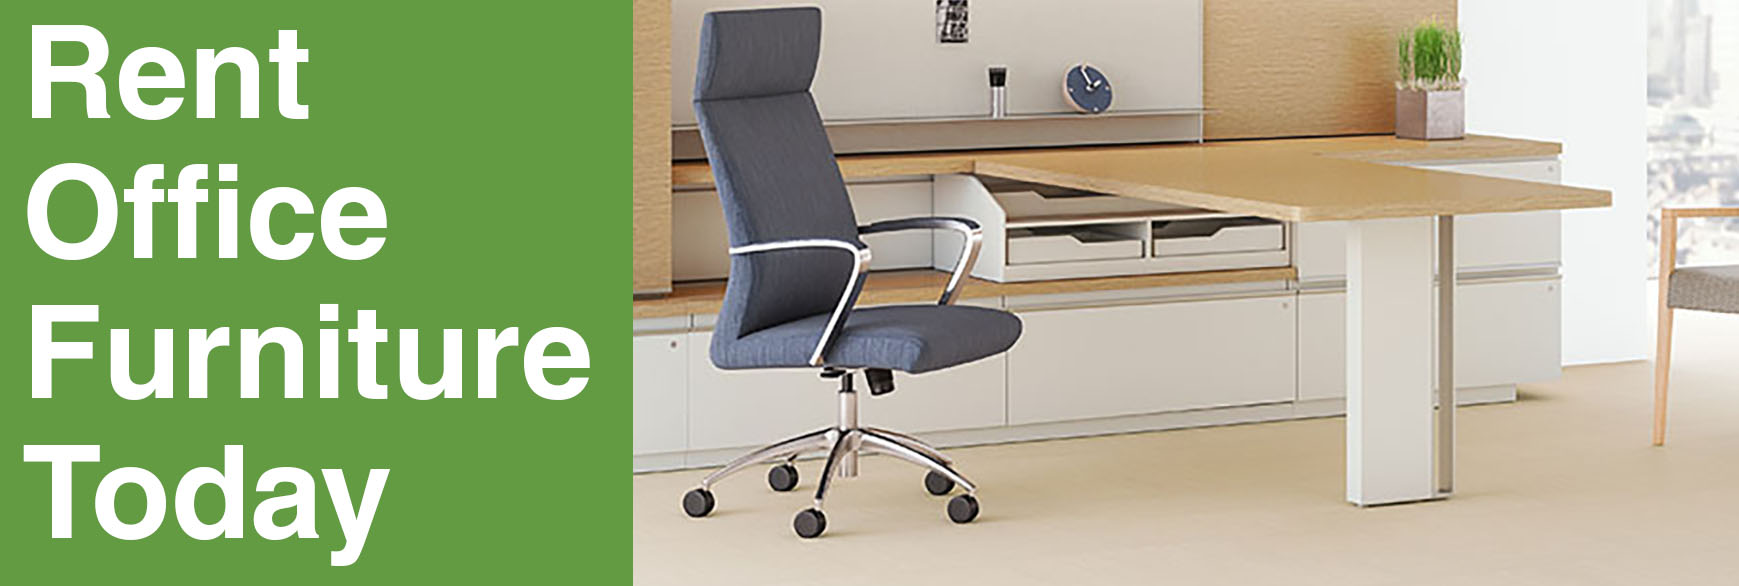 rent-office-furniture1.jpg